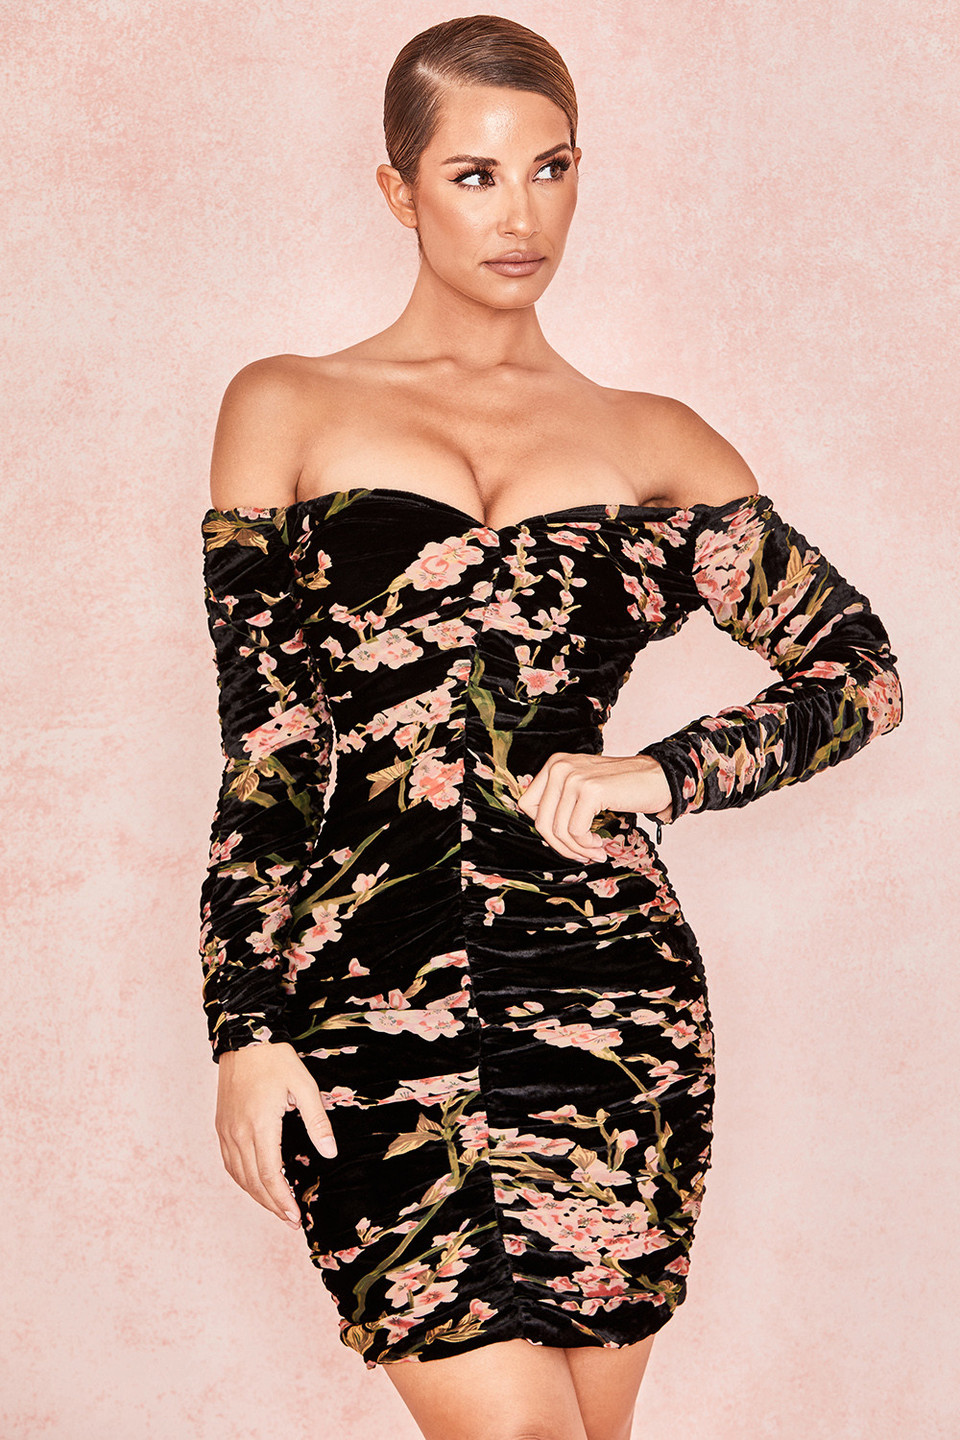 Noella Black Peach Floral Bardot Dress